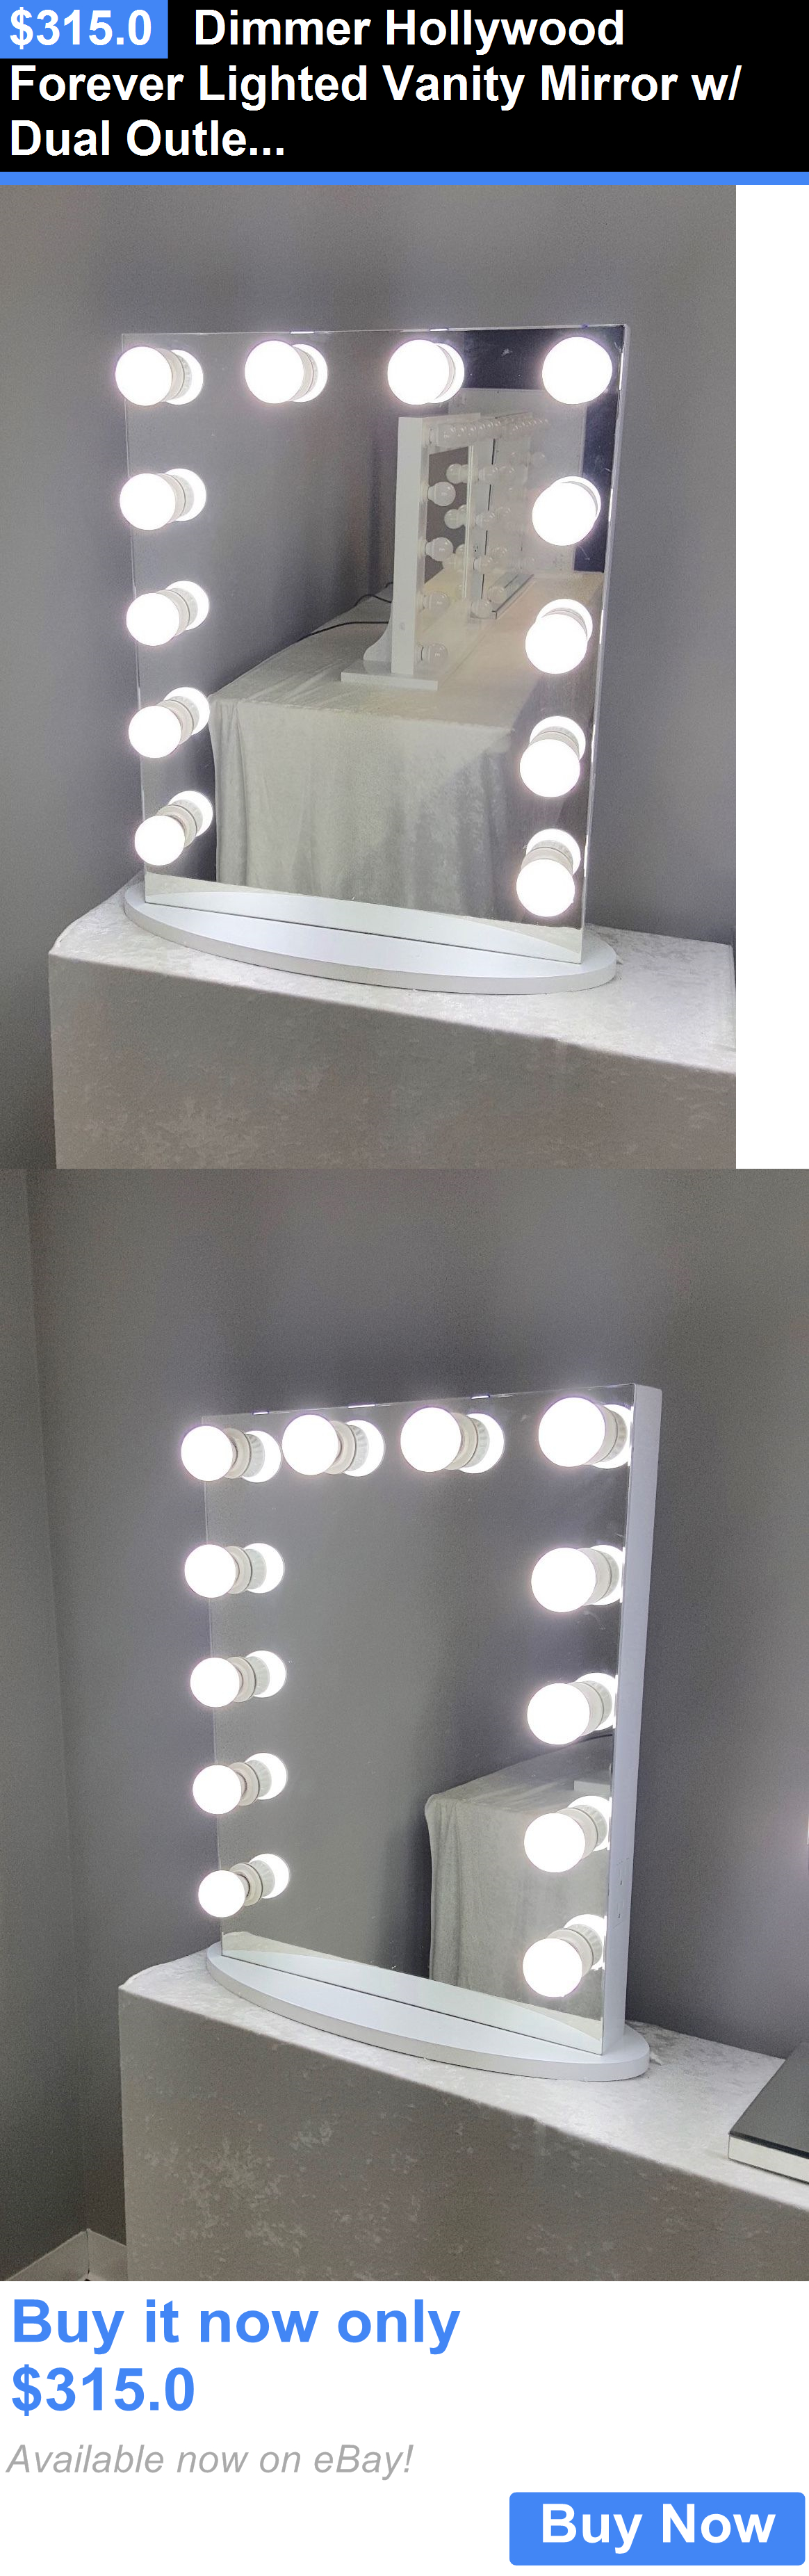 Makeup Mirrors  Dimmer Hollywood Forever Lighted Vanity Mirror W  Dual  Outlets And Led Bulbs. Makeup Mirrors  Dimmer Hollywood Forever Lighted Vanity Mirror W